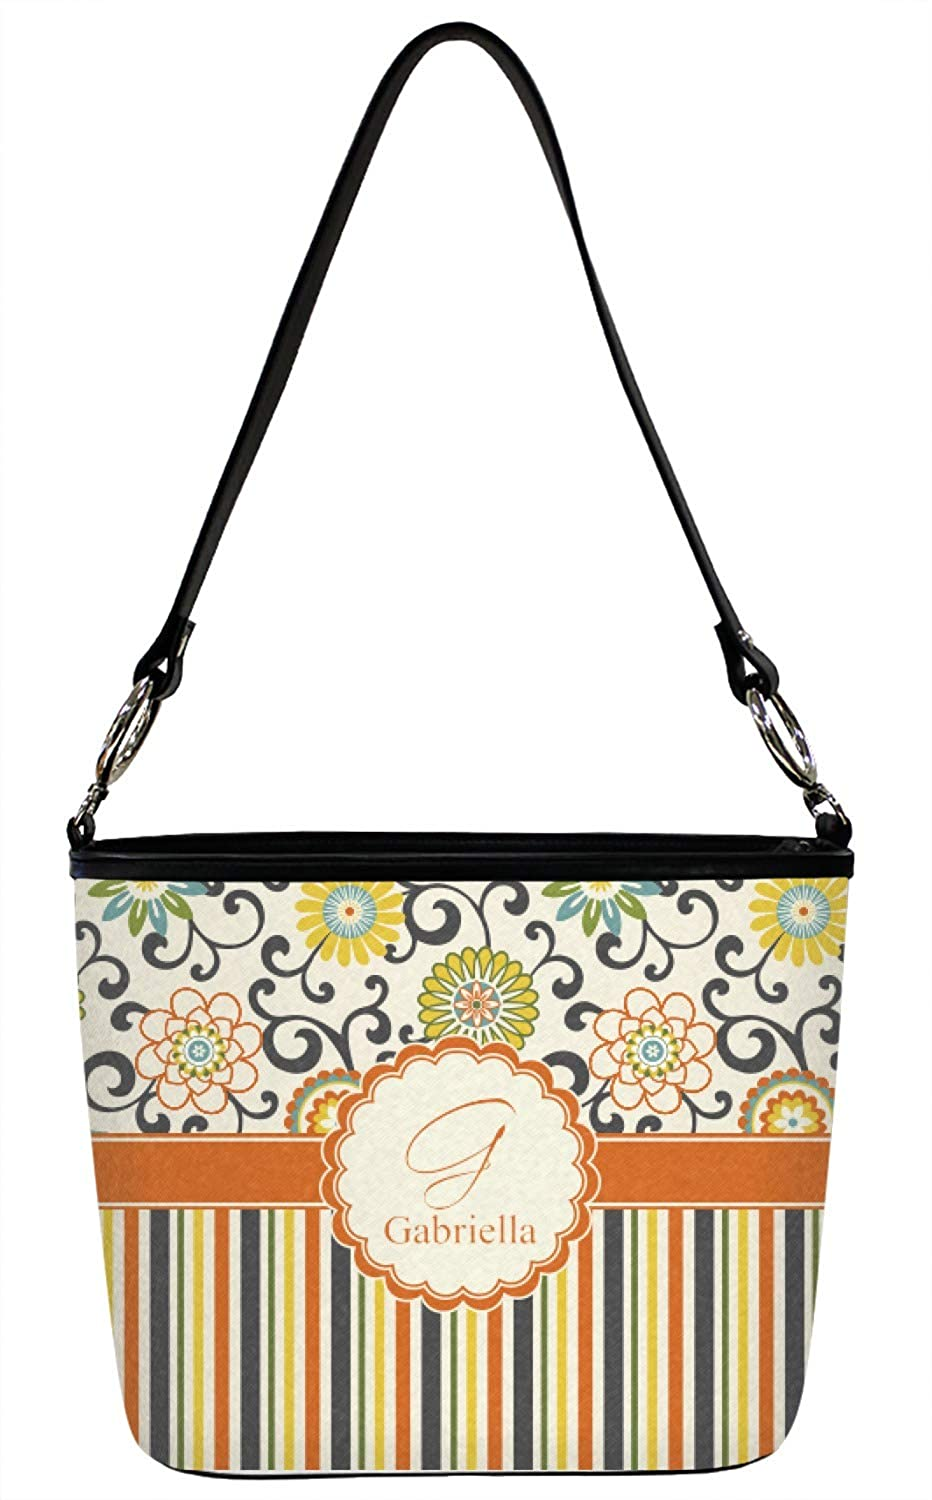 Front Personalized Floral /& Stripes Bucket Bags w//Genuine Leather Trim Large Swirls